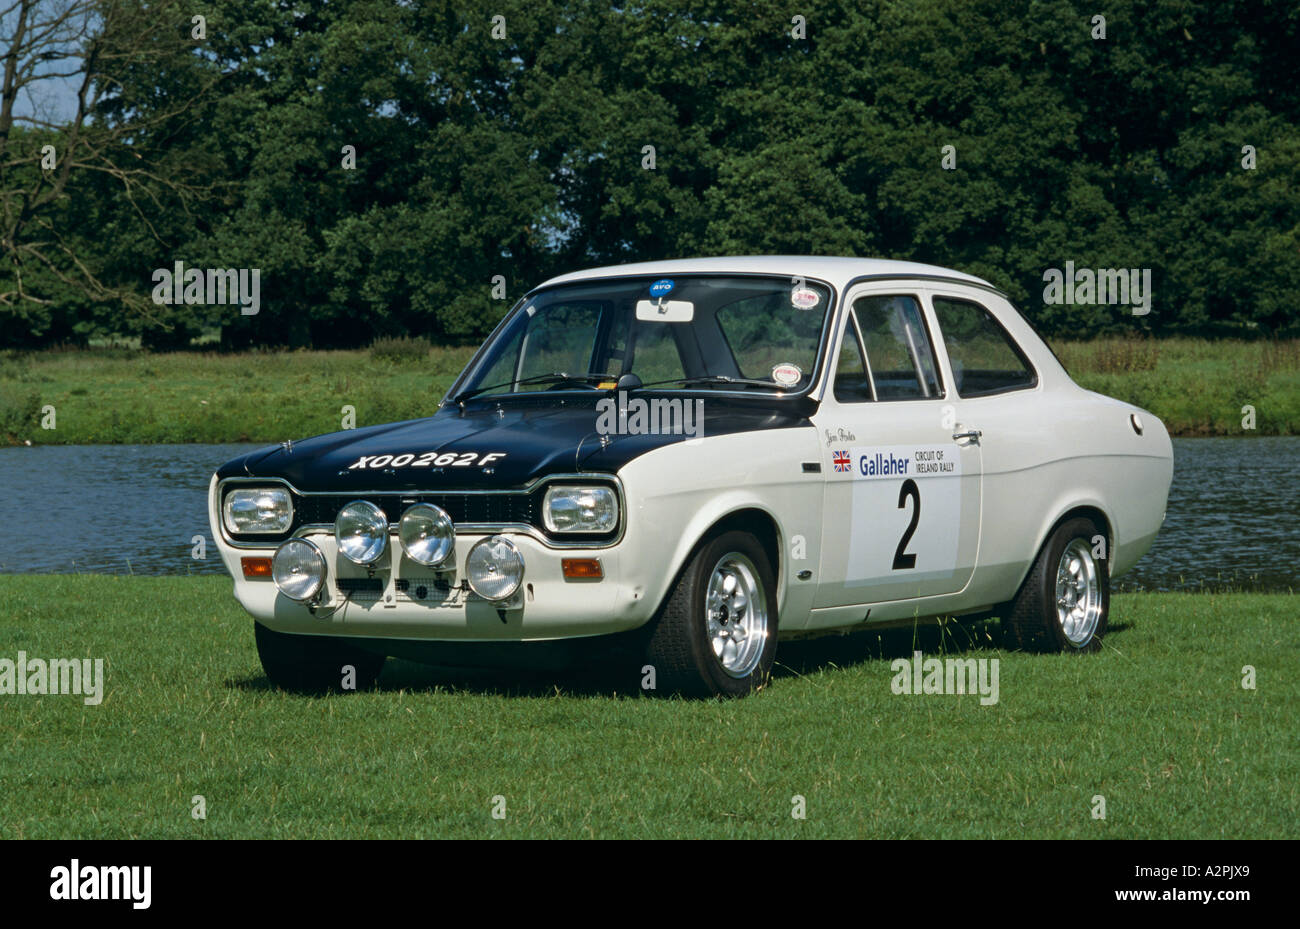 Ford Escort Mk1 Works Rally Car of 1968 Stock Photo: 6042664 - Alamy